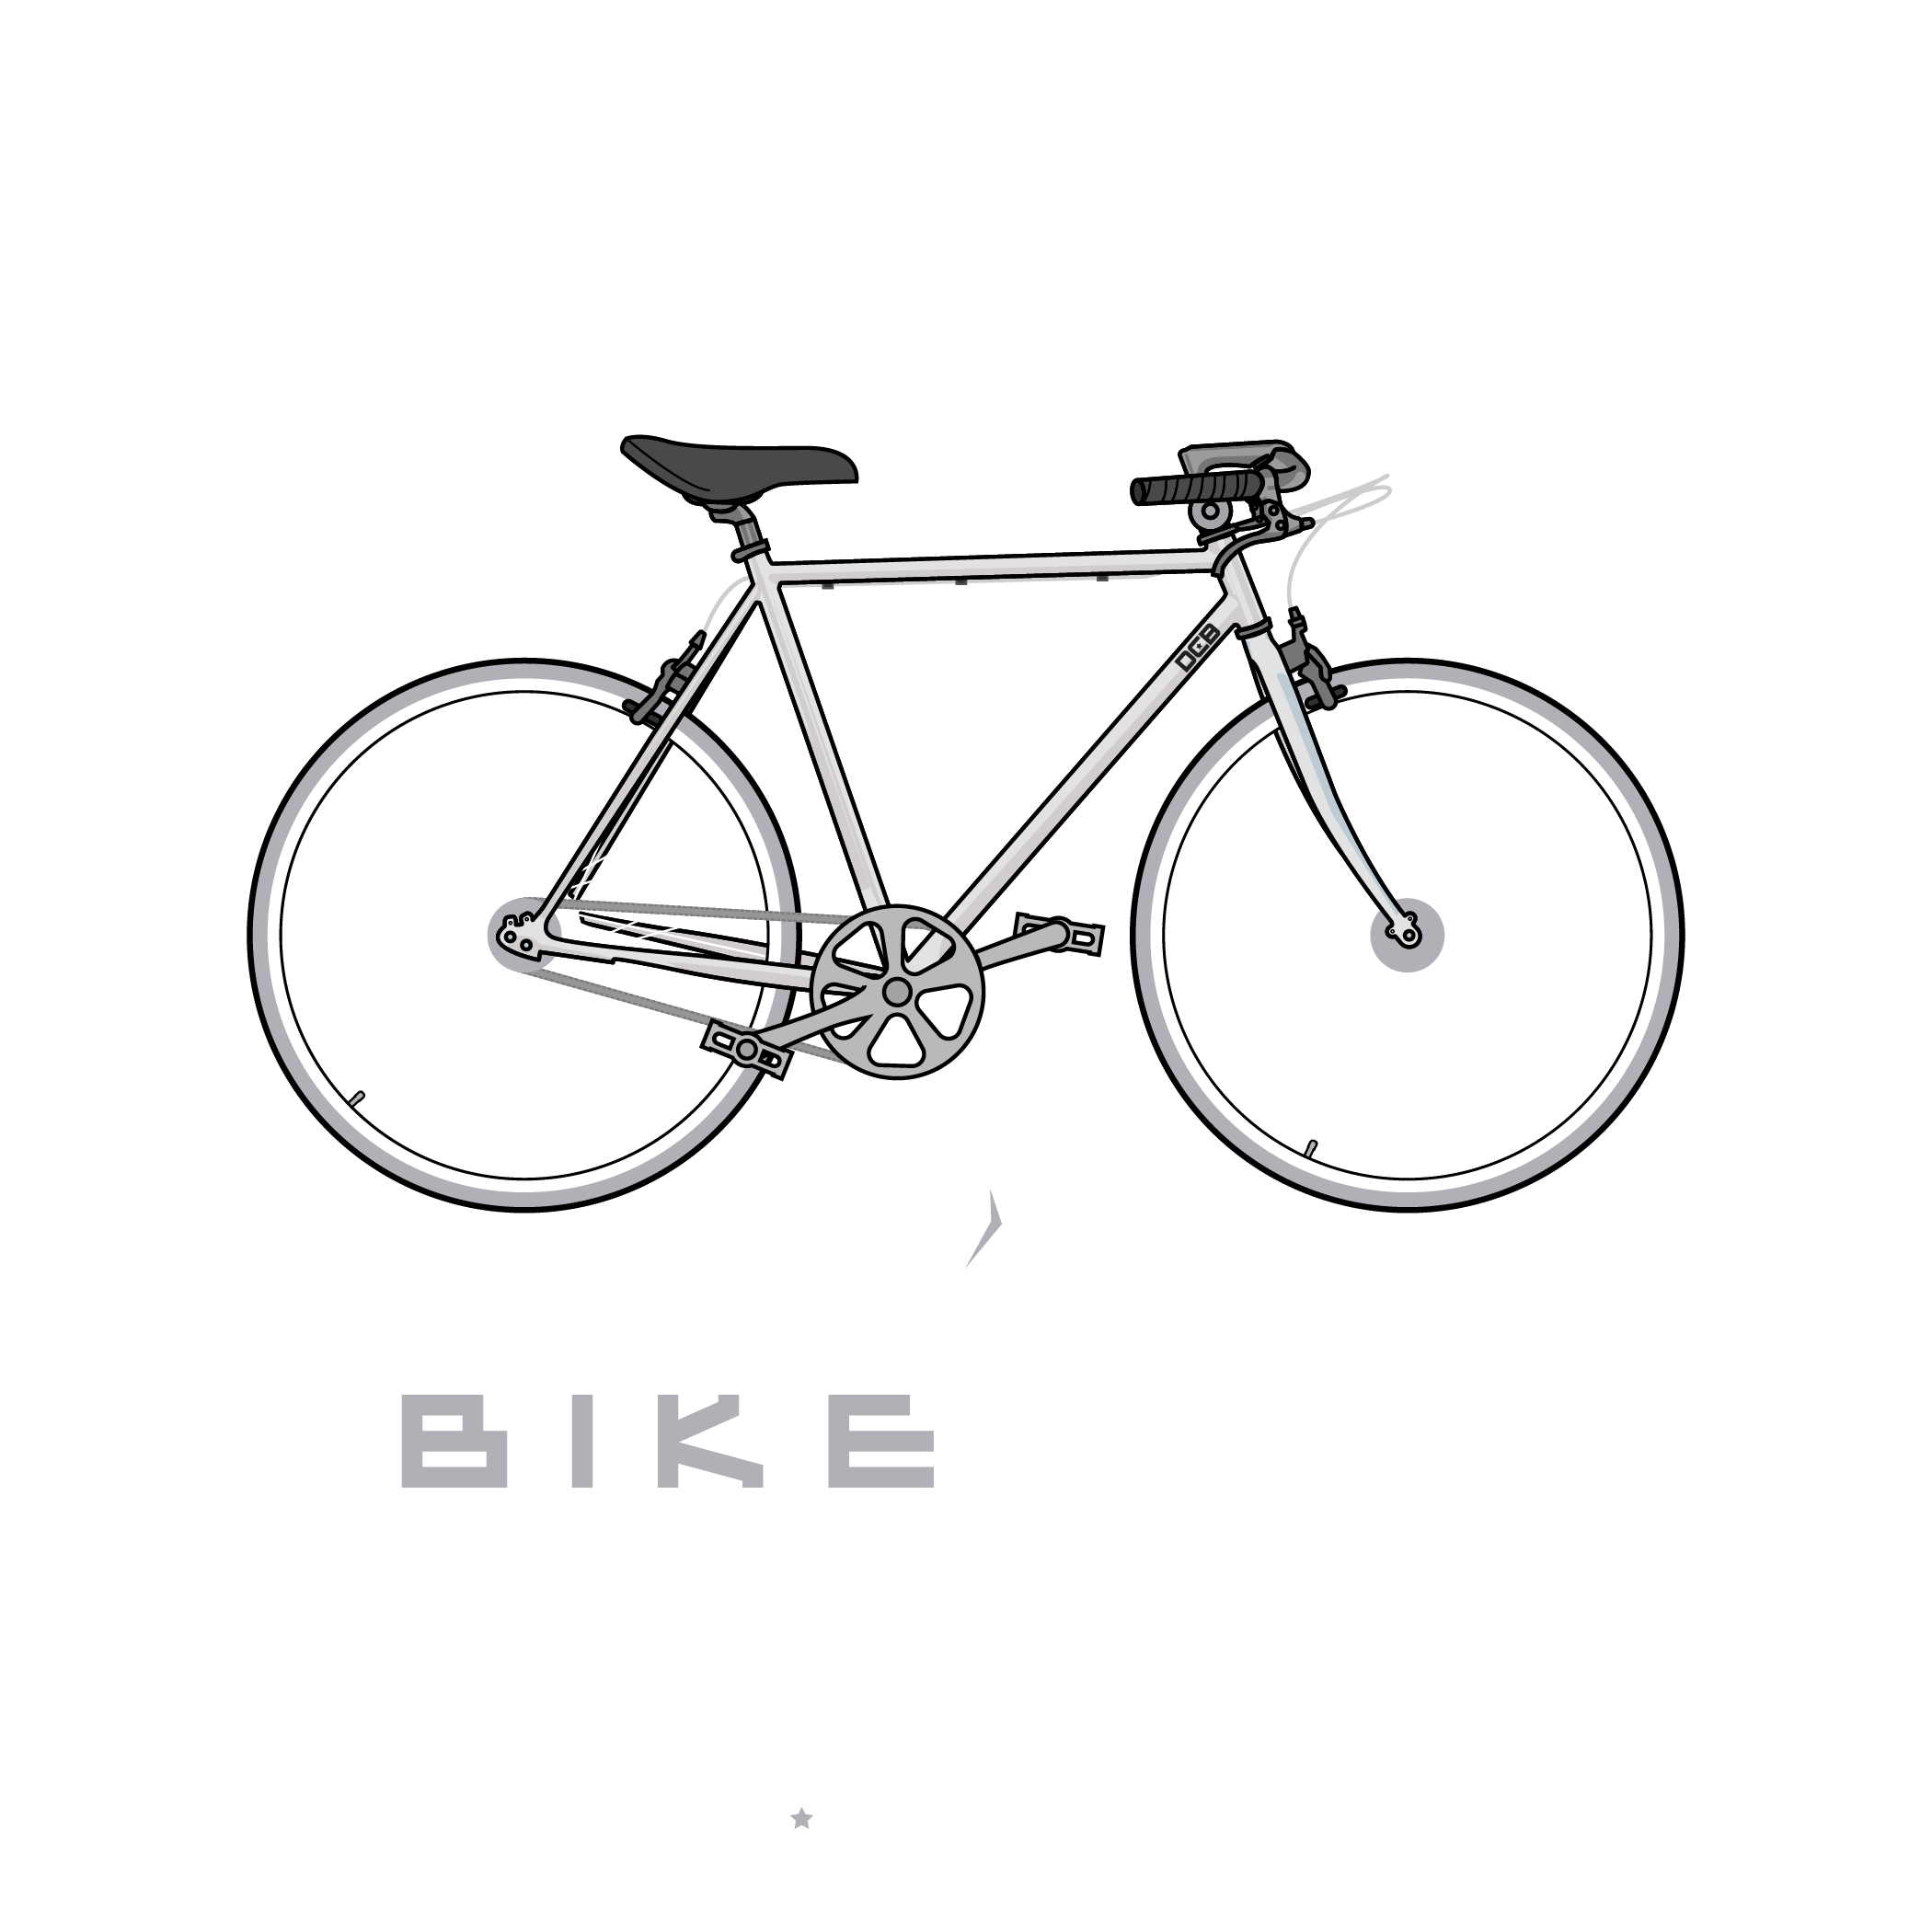 Bike Life Fixie Silver Back.png